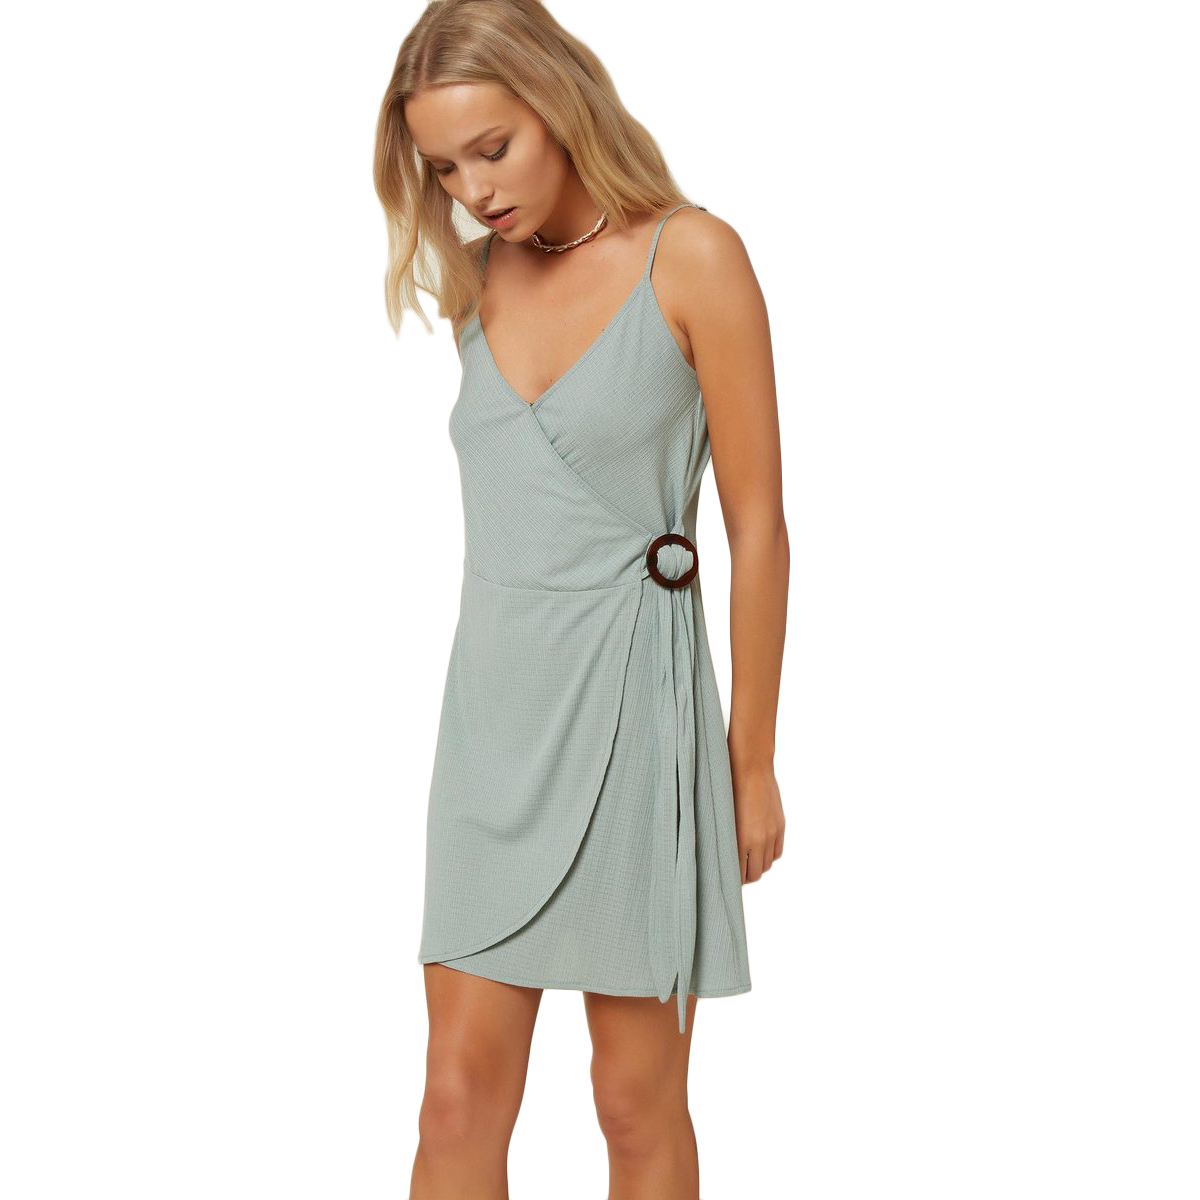 O'neill Women's Ivara Dress - Green, XS